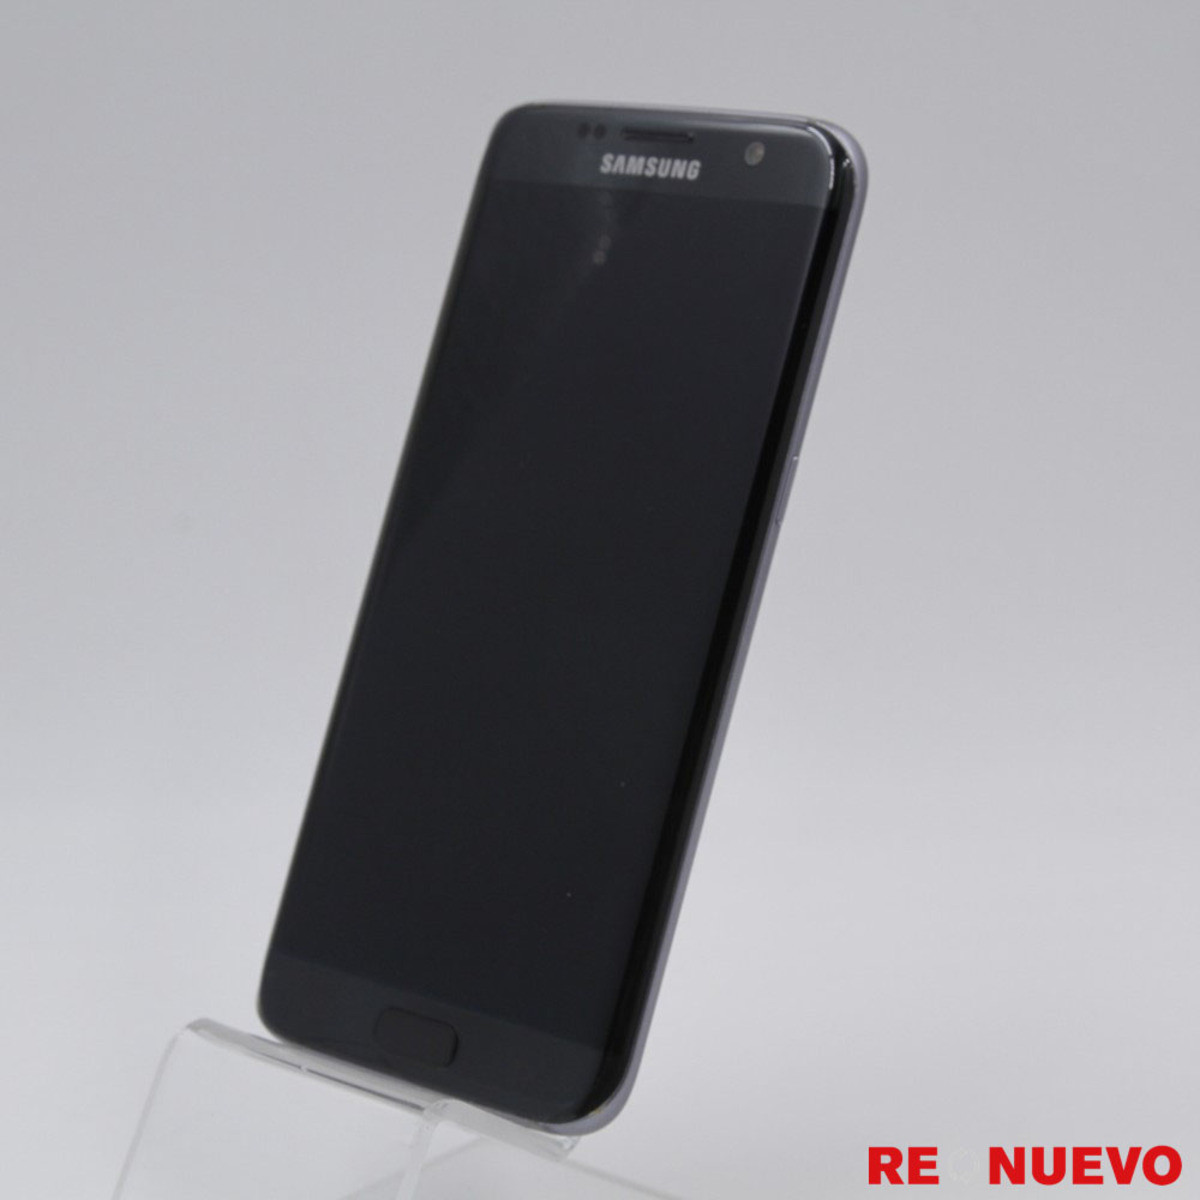 Comprar Galaxy S7 Edge Encantador Prar Samsung Galaxy S7 Edge De 32gb Black Yx De Of Comprar Galaxy S7 Edge Perfecto Samsung Galaxy S7 Edge Celulares Costa Rica